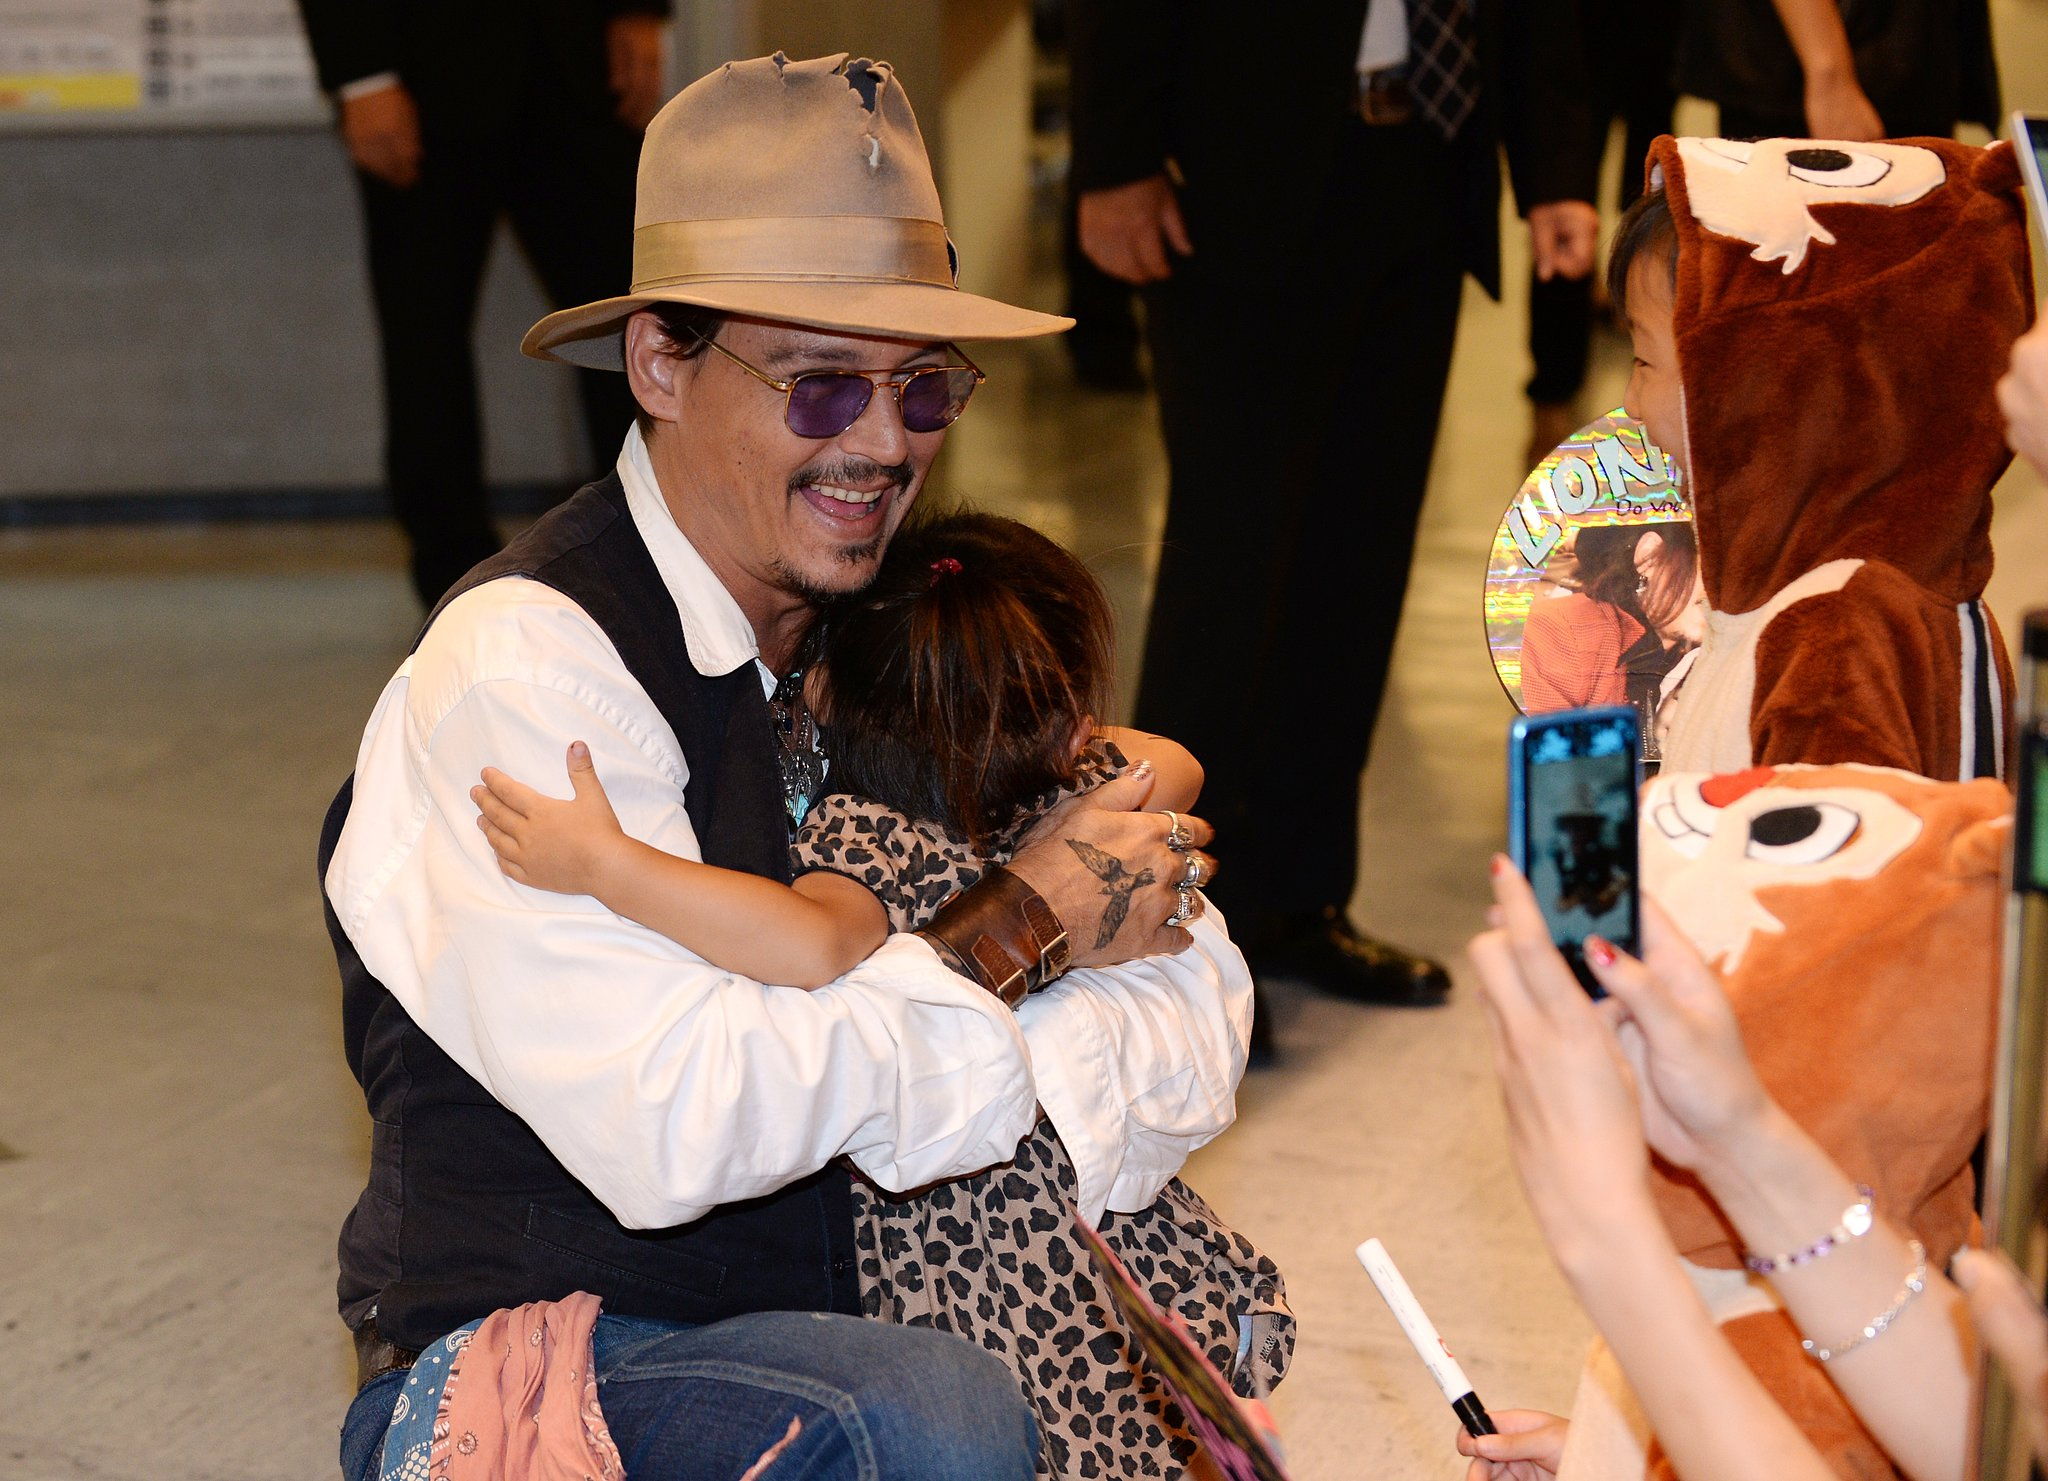 Johnny Depp hugged a young Japanese fan.